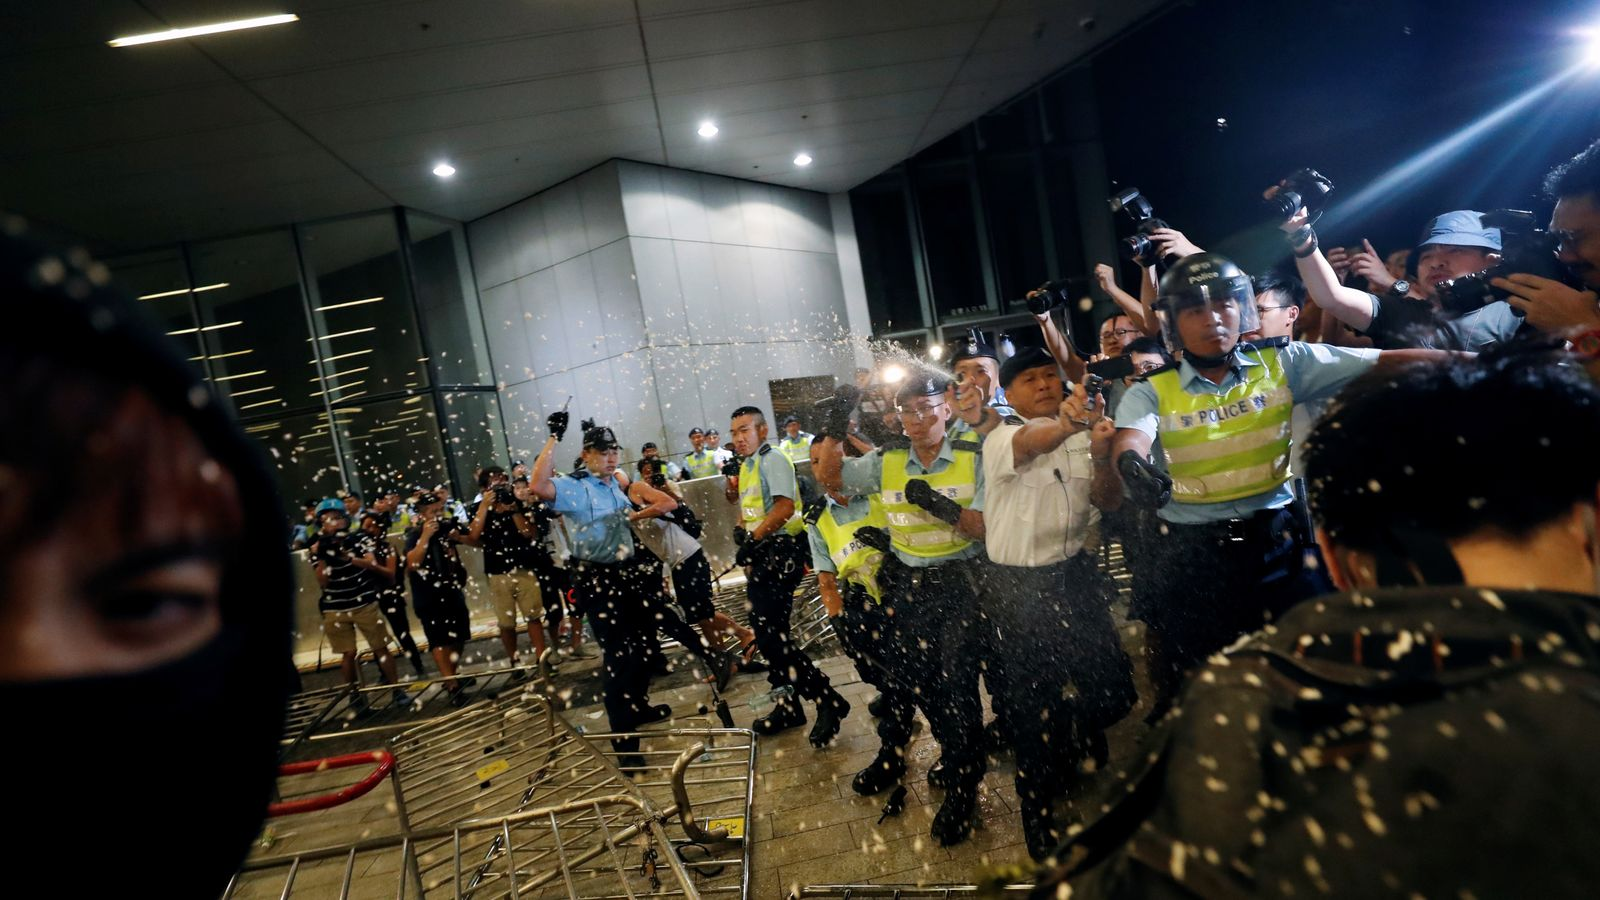 Hong Kong to press on with extradition bill despite fears people will 'disappear'                                                                              Opponents challenge the fairness of justice on the mainland and fear security forces fabricating trumped up charges.